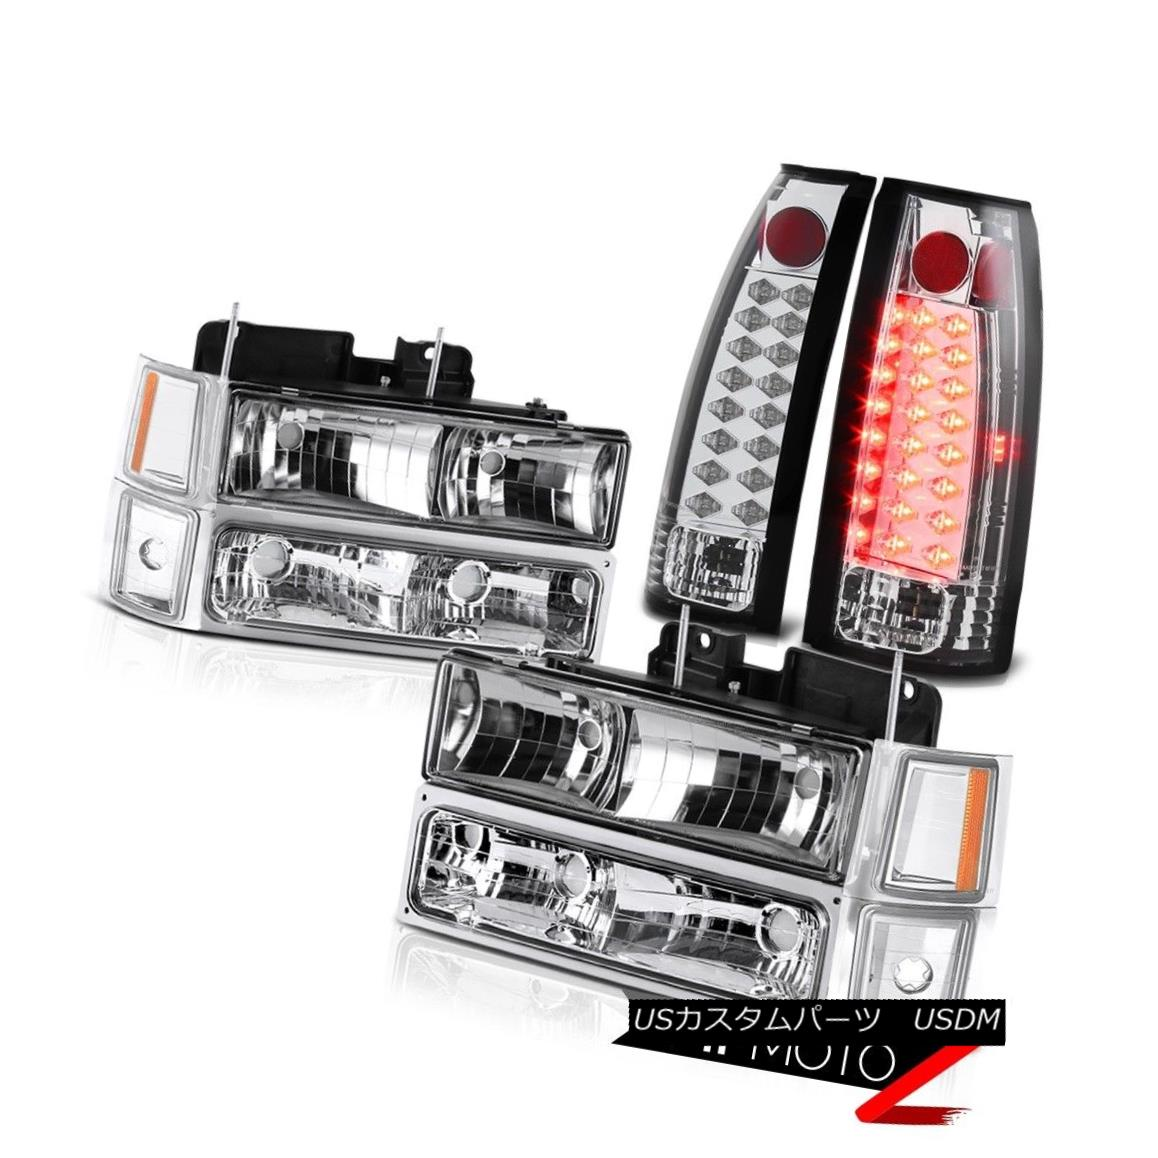 テールライト EURO CHROME LED TAILLIGHTS TAILLAMPS GLASS HEADLIGHT HEADLAMPS SET LEFT RIGHT EURO CHROME LED TAILLIGHTS TAILLAMPSグラスライトヘッドライトヘッドライトセット